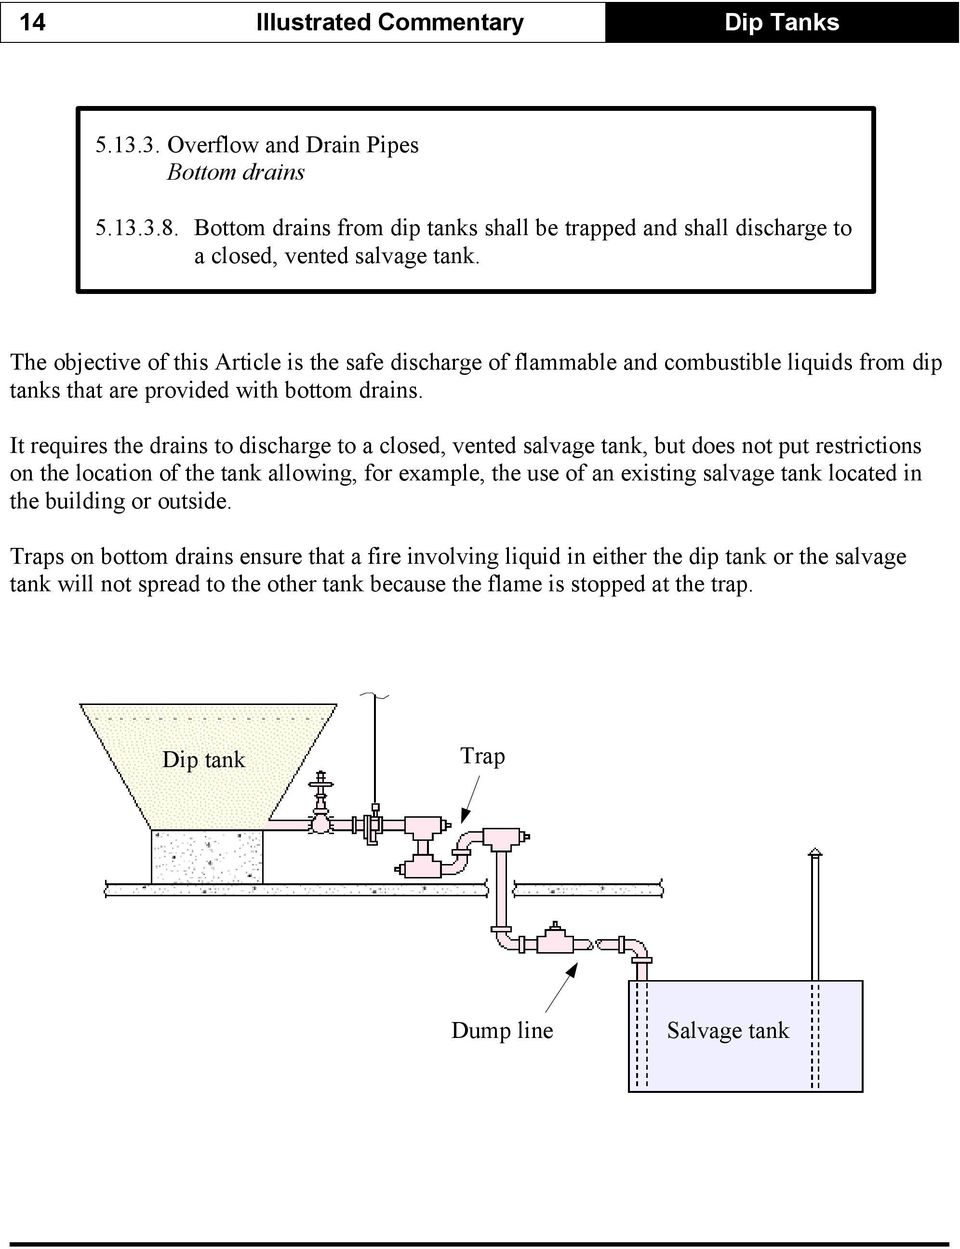 It requires the drains to discharge to a closed, vented salvage tank, but does not put restrictions on the location of the tank allowing, for example, the use of an existing salvage tank